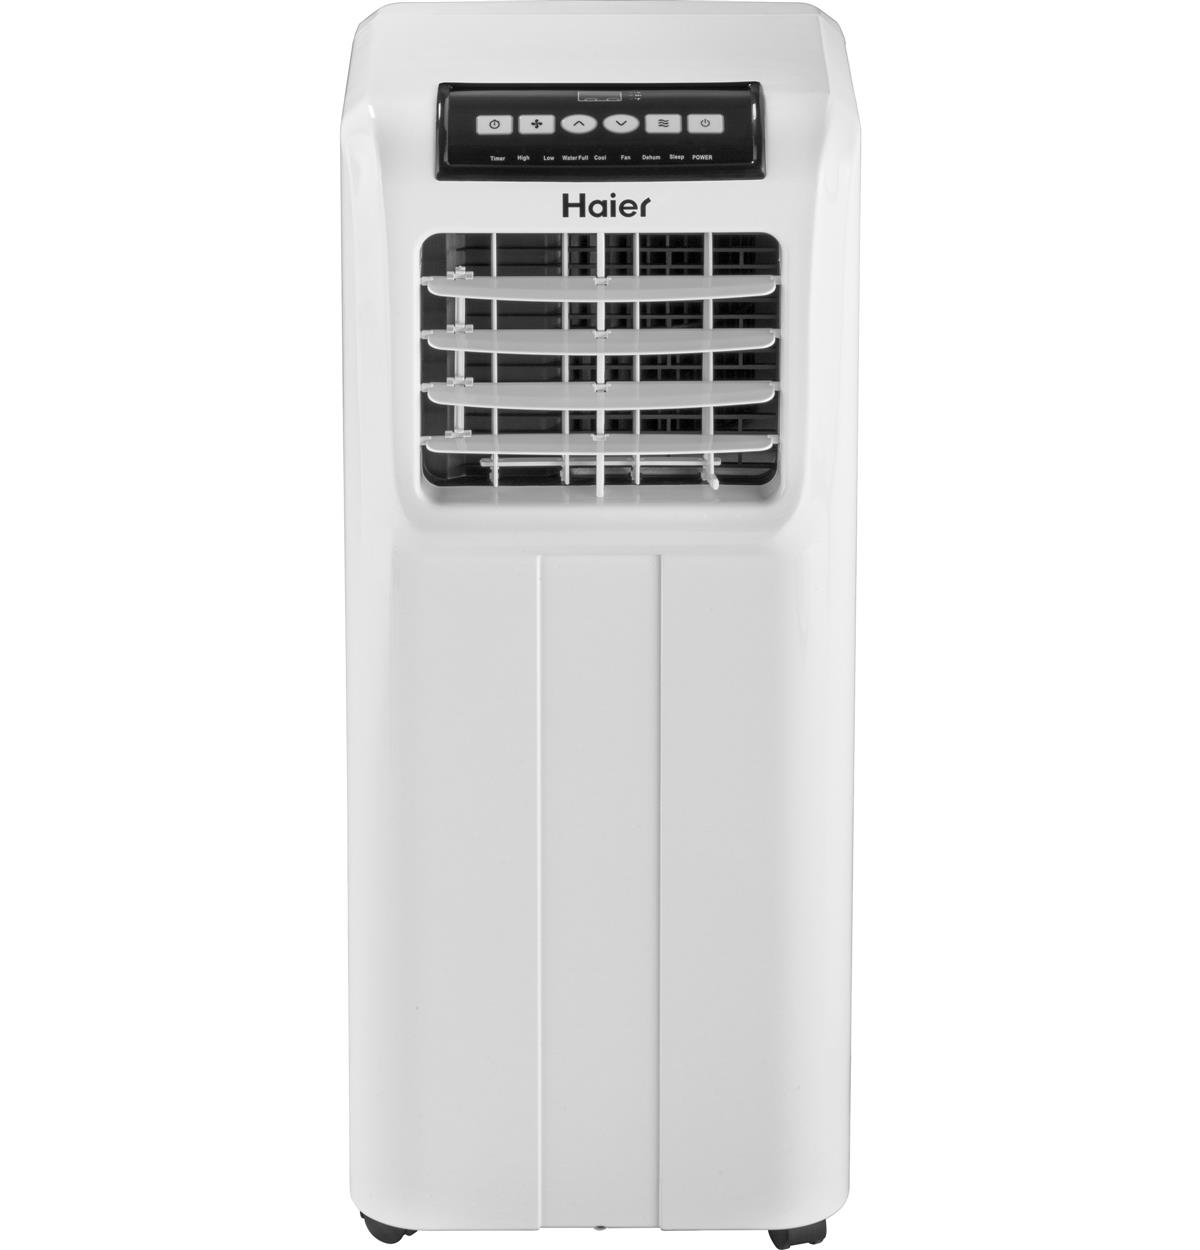 Hpp08xcr Portable Air Conditioner Haier Appliances Installing Electric Fan On A C3 White Un Installed Free Standing